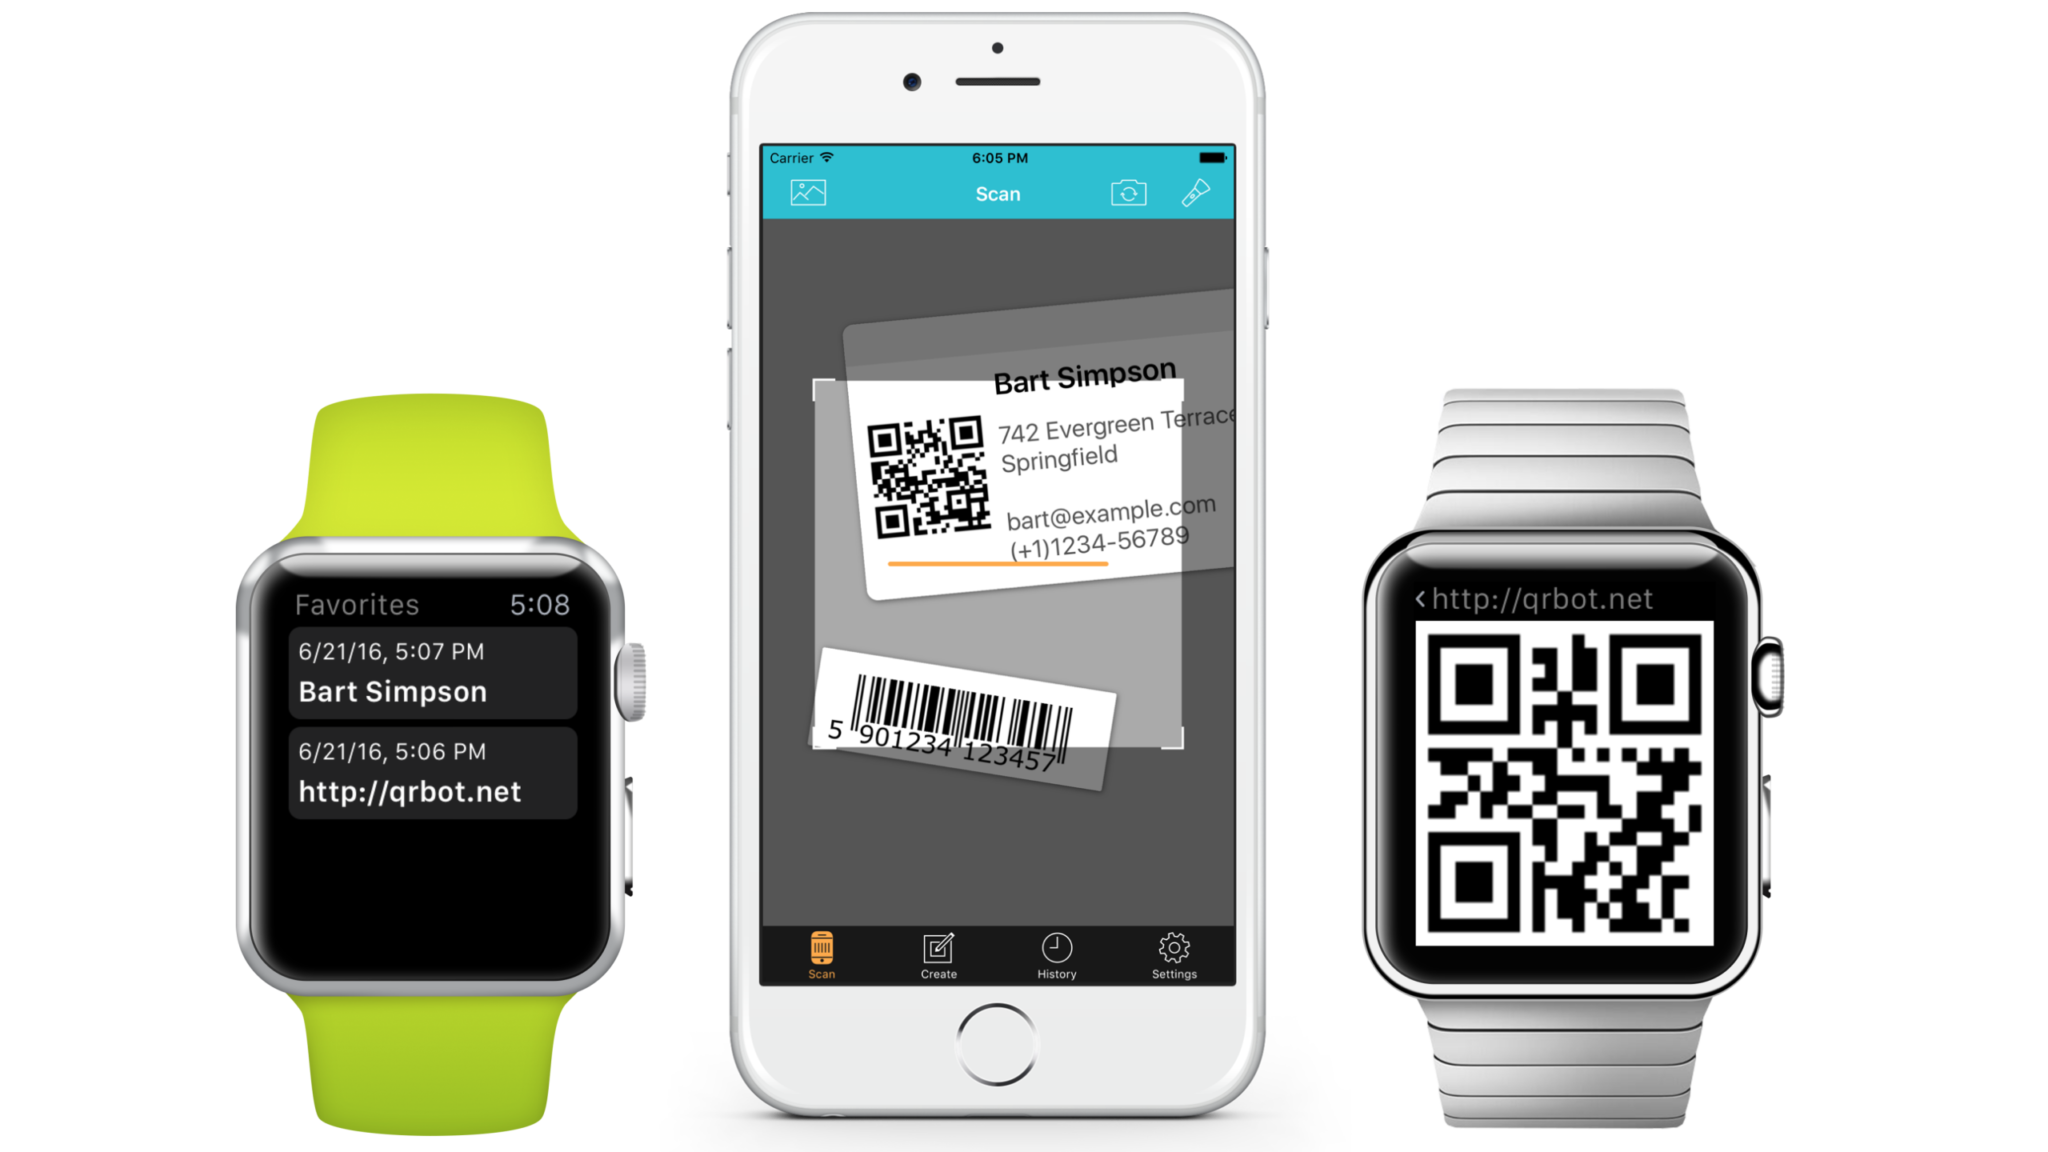 Iphone Barcode Scanner App To Excel